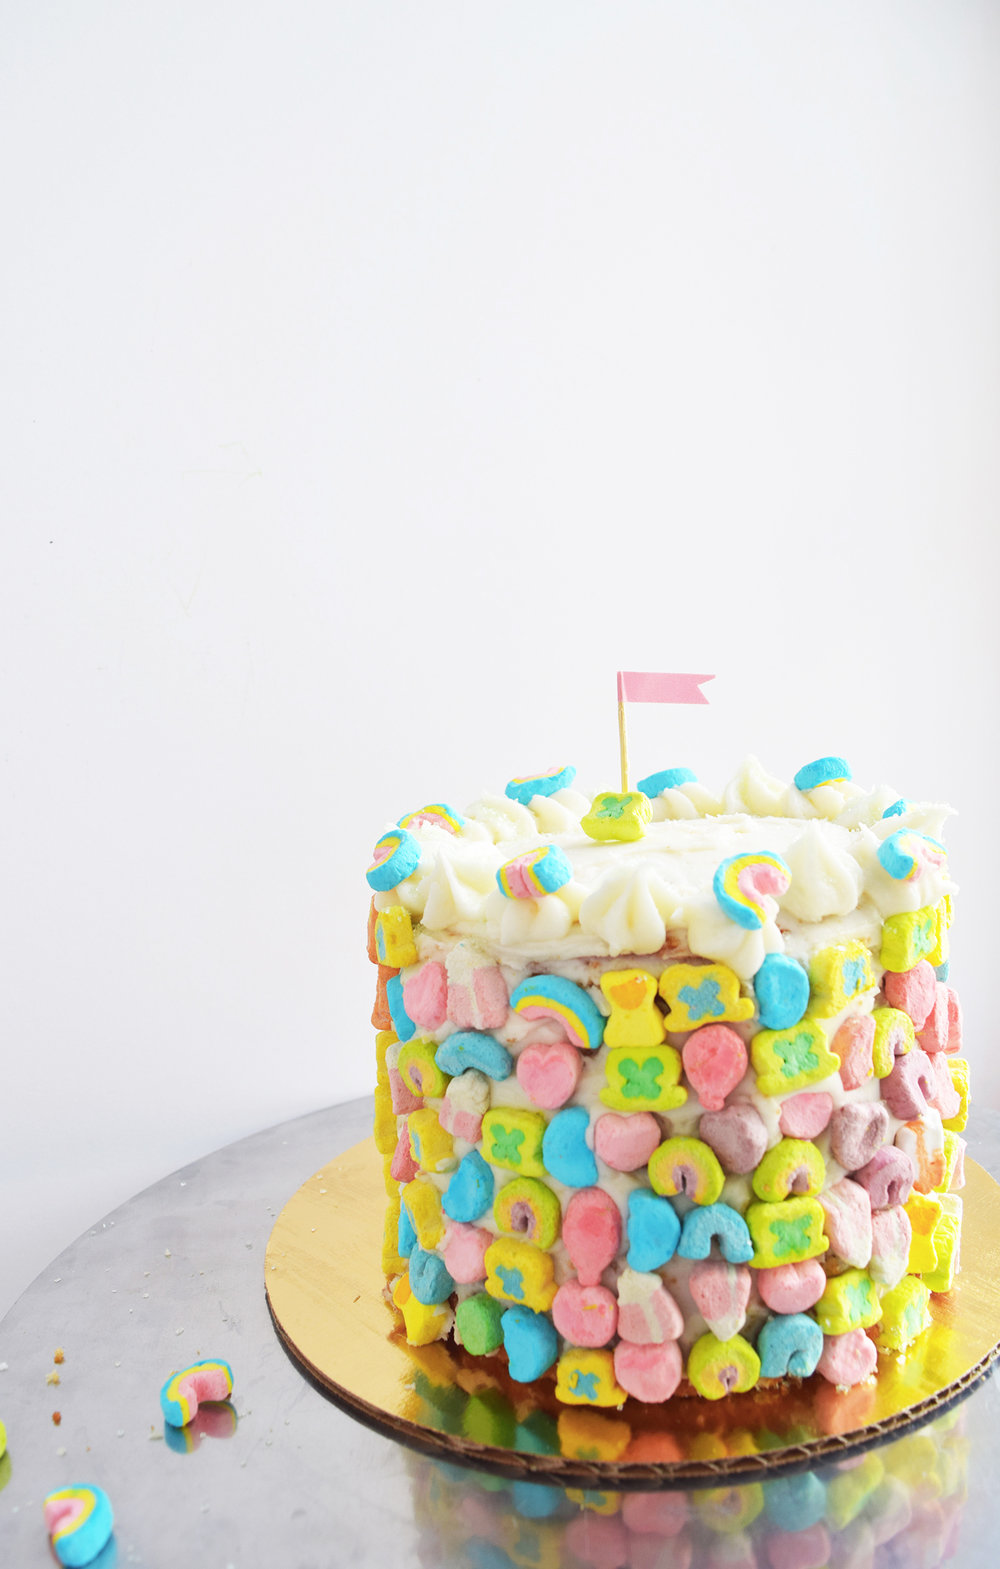 lucky_charms_cake_sq.jpg